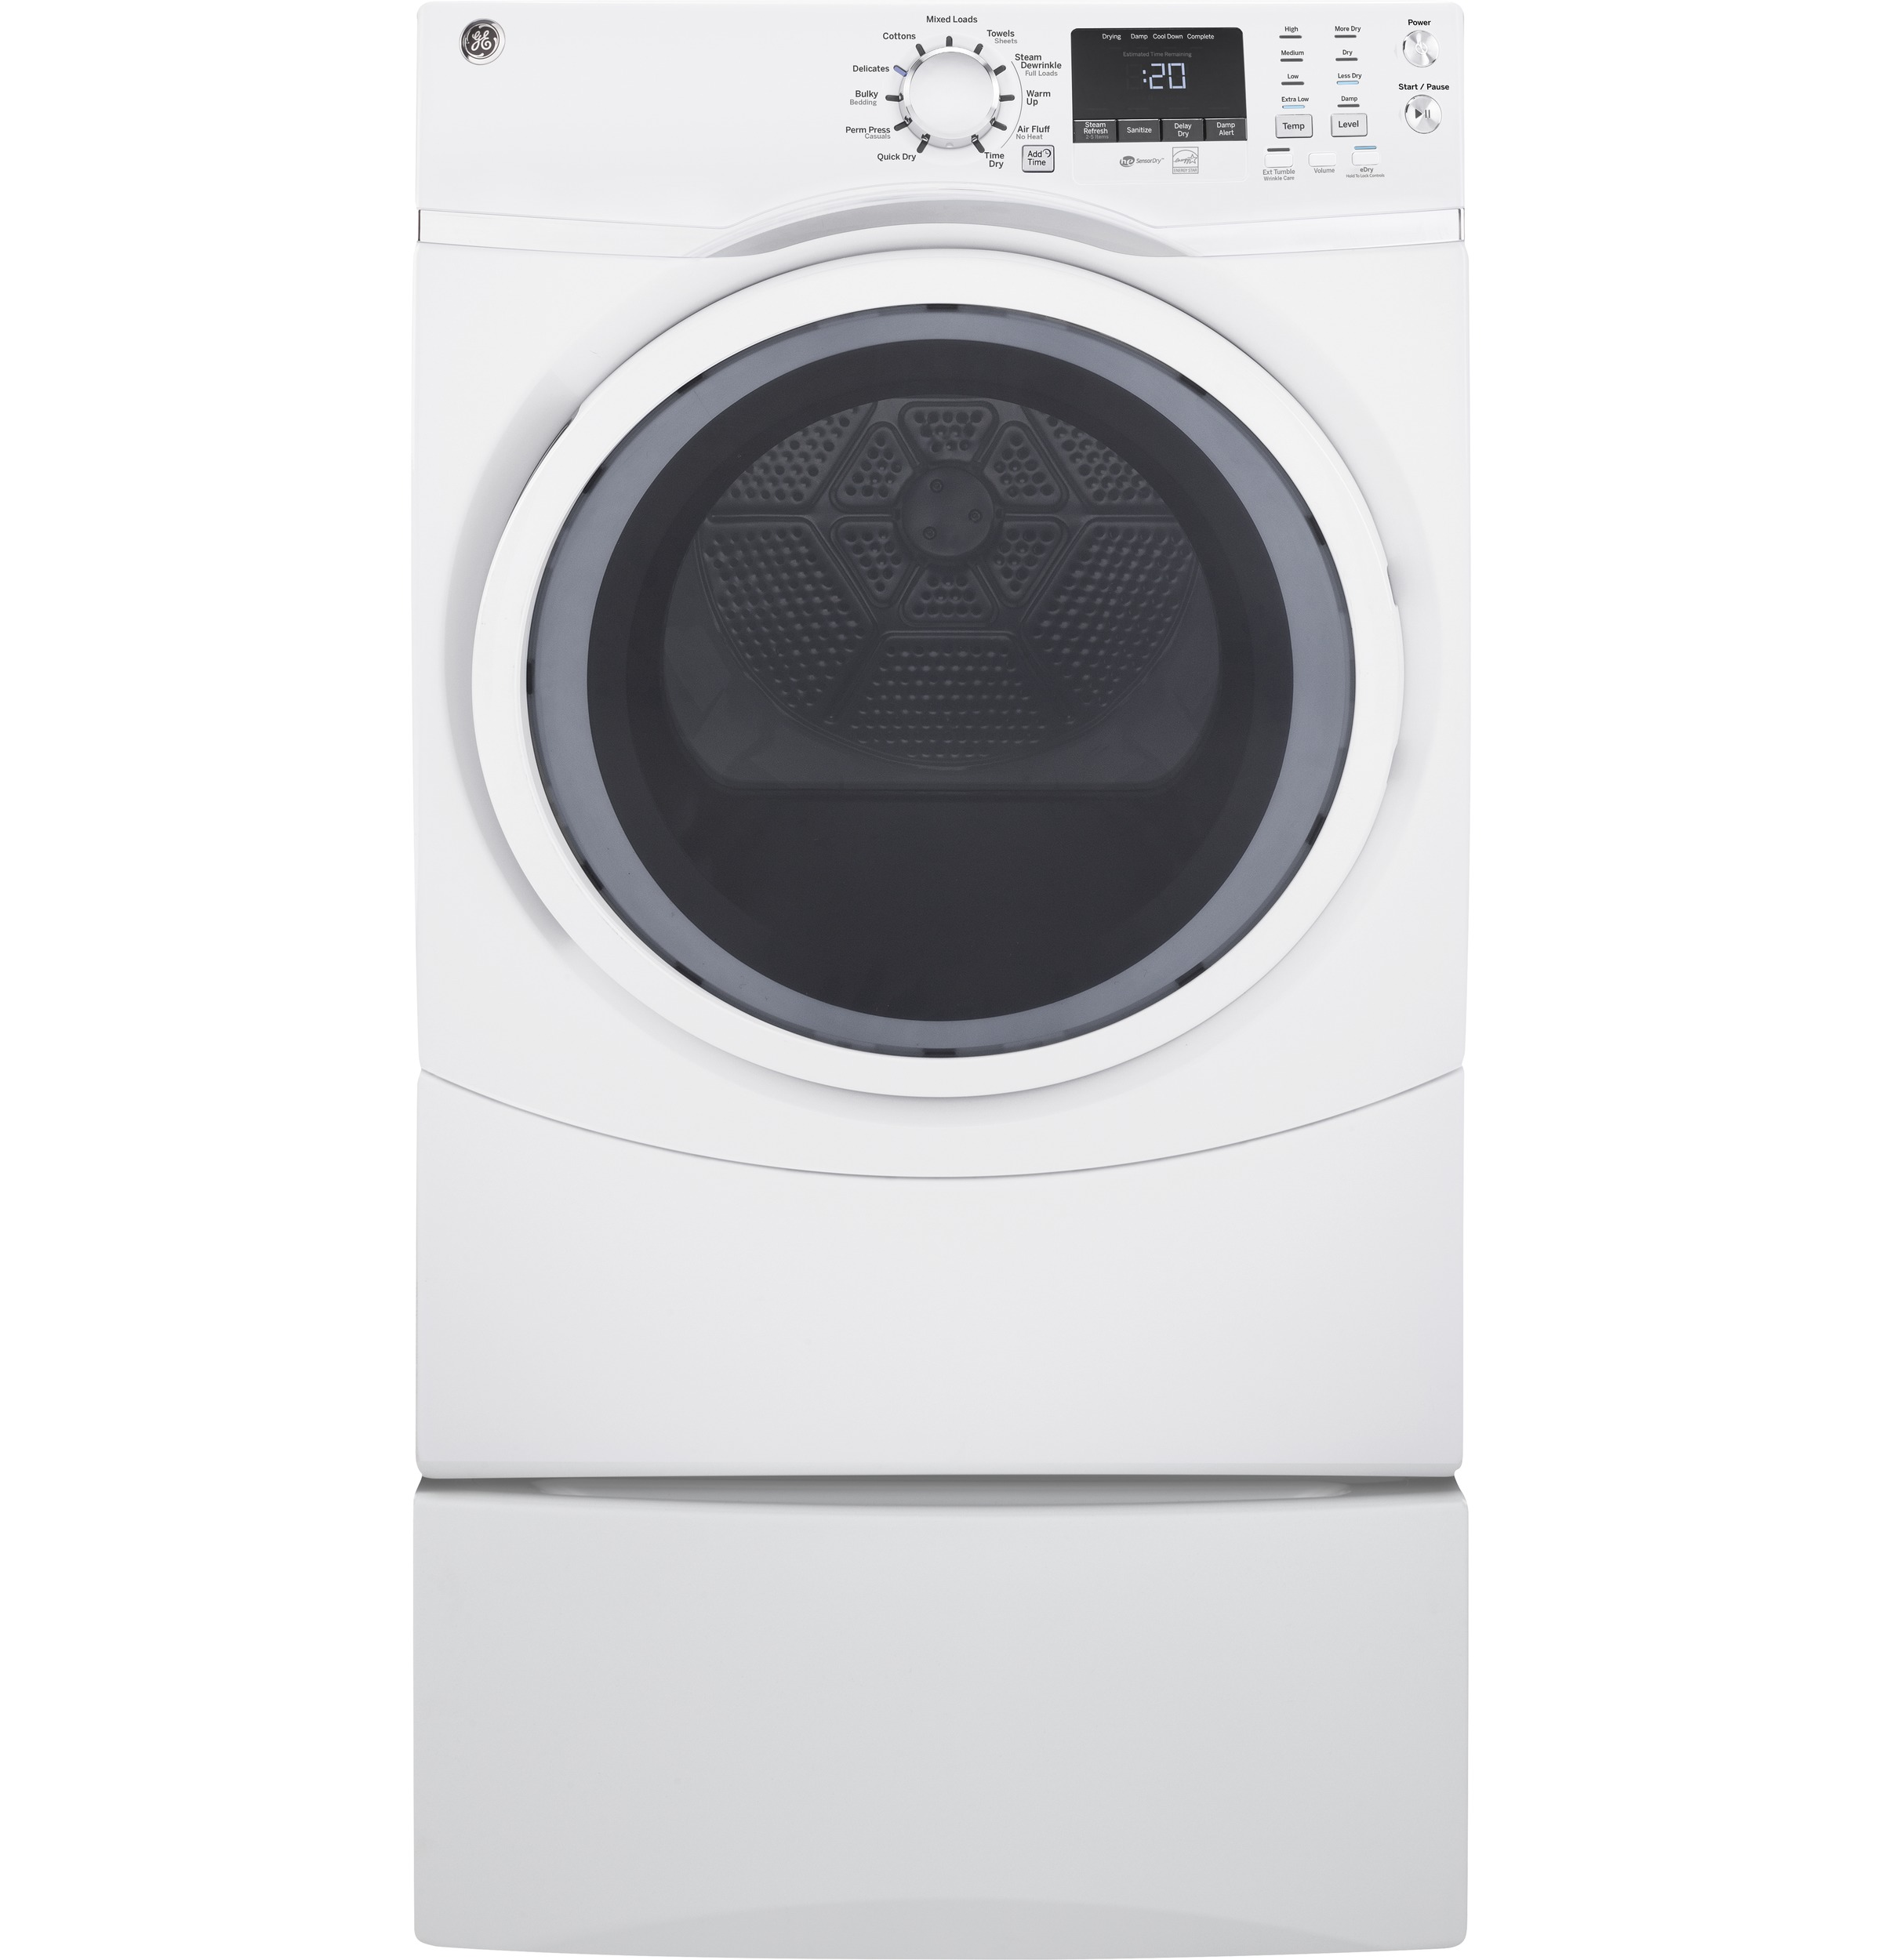 Model: GFD45GSSMWW | GE GE® 7.5 cu. ft. Capacity Front Load Gas Dryer with Steam